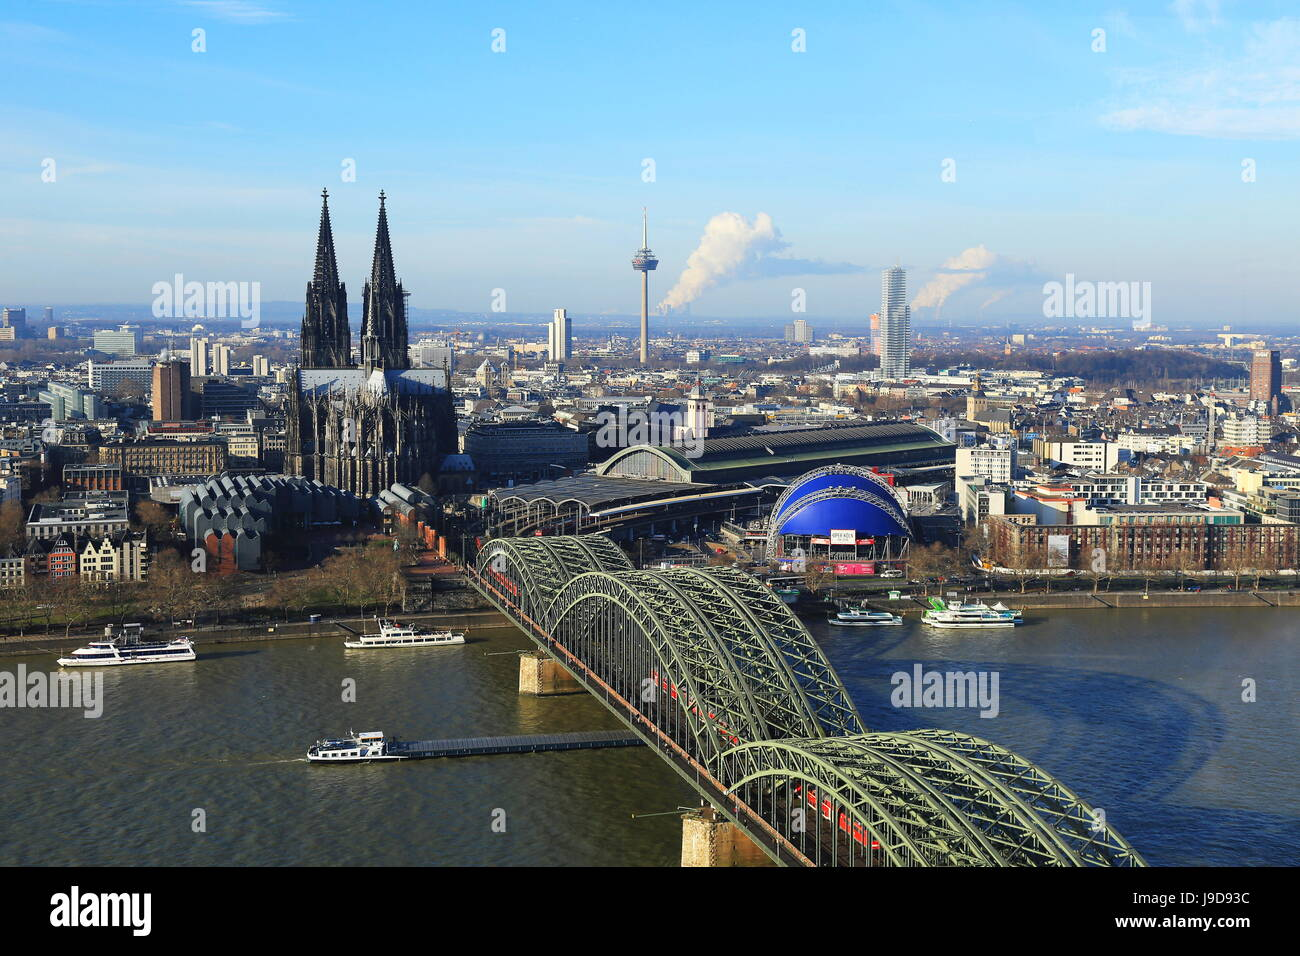 Hohenzollern Bridge with Cologne Cathedral, Cologne, North Rhine-Westphalia, Germany, Europe - Stock Image